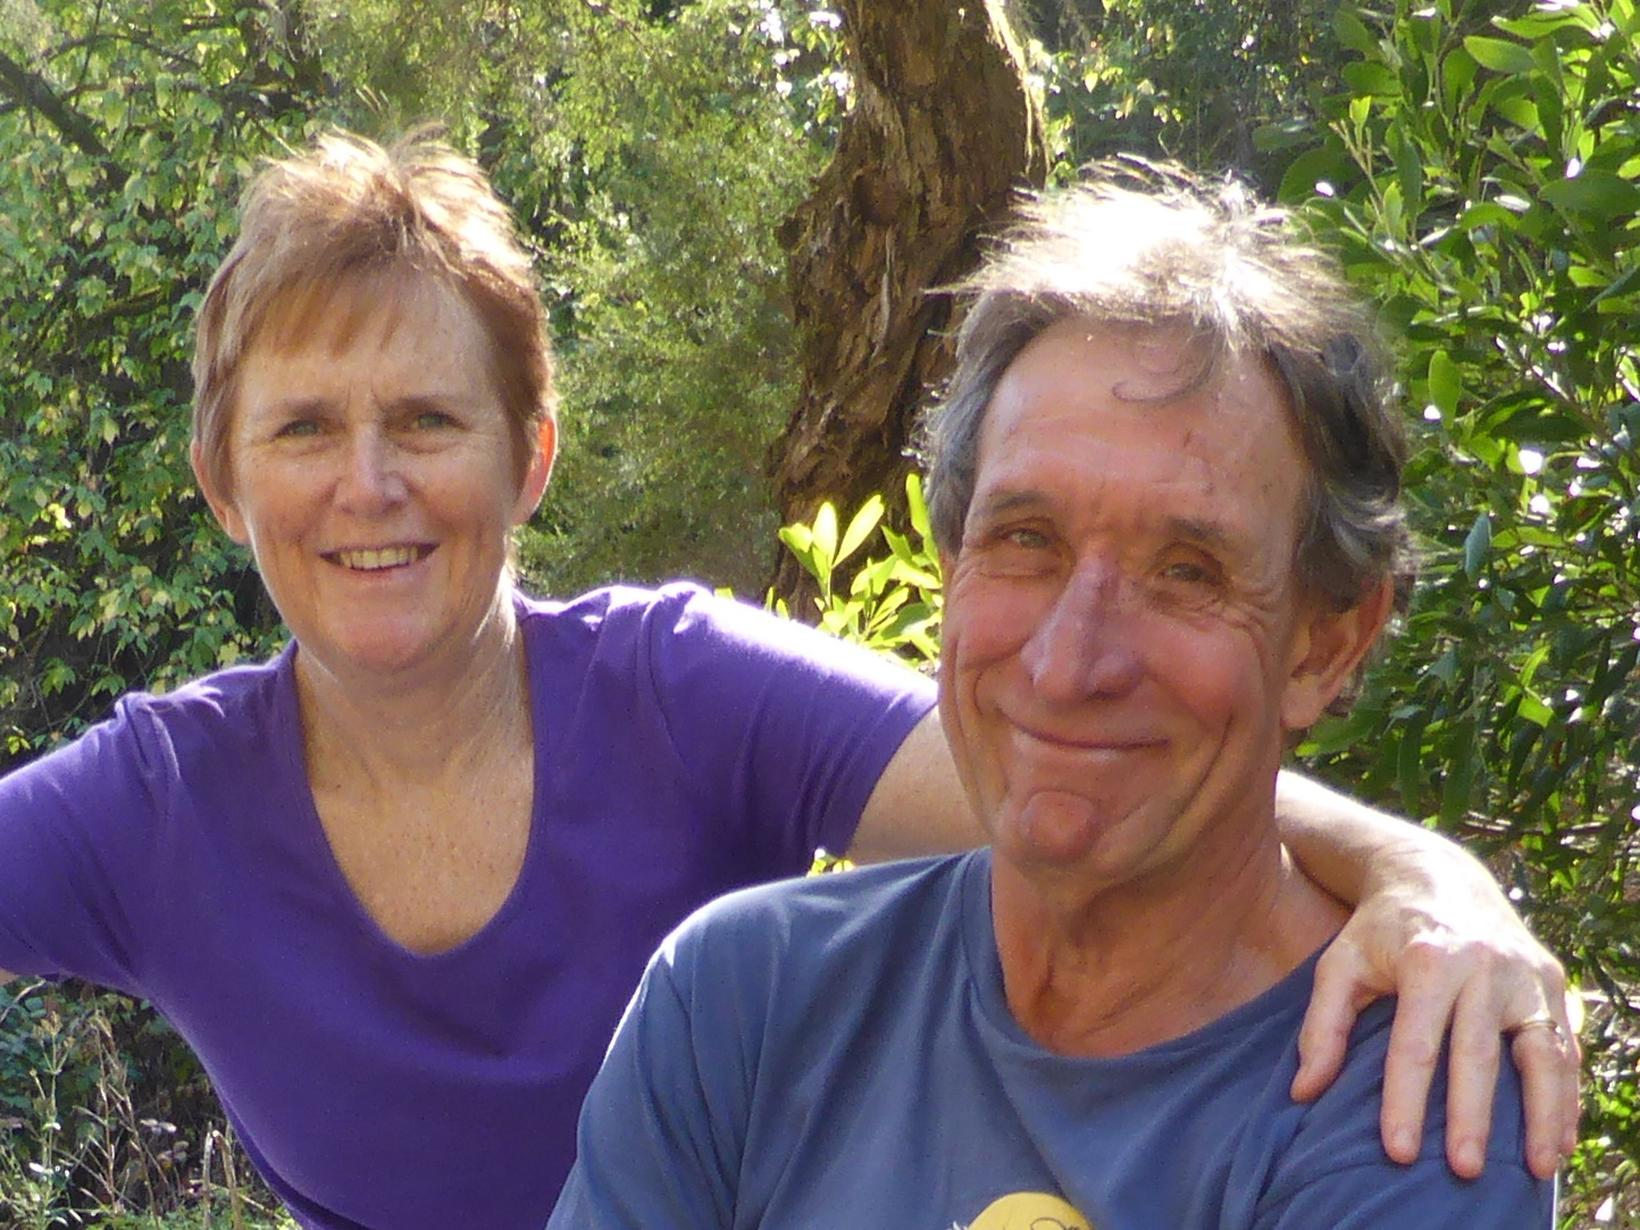 Susan & James from Lilyfield, New South Wales, Australia